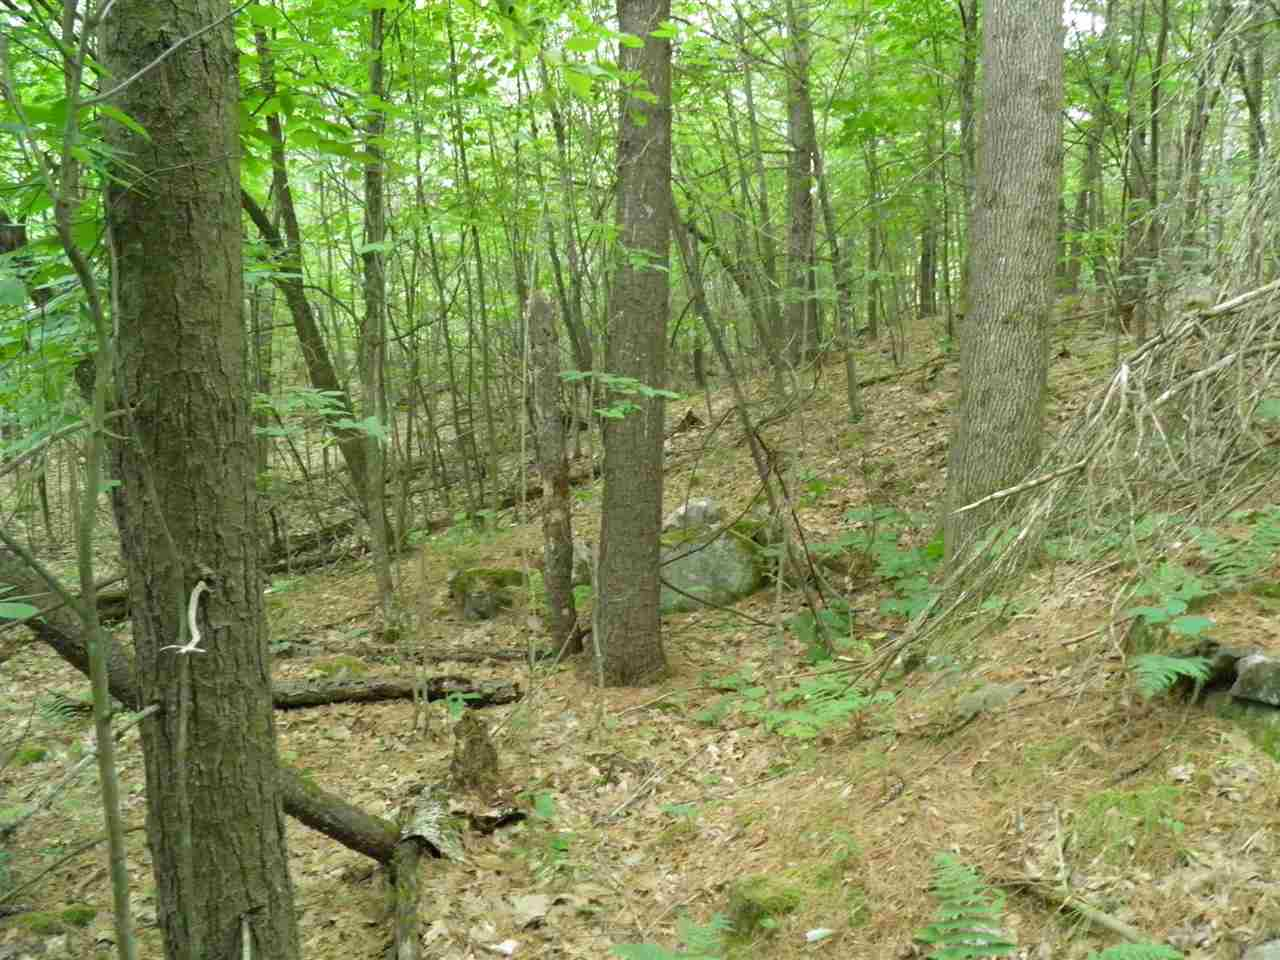 Keeseville image 4